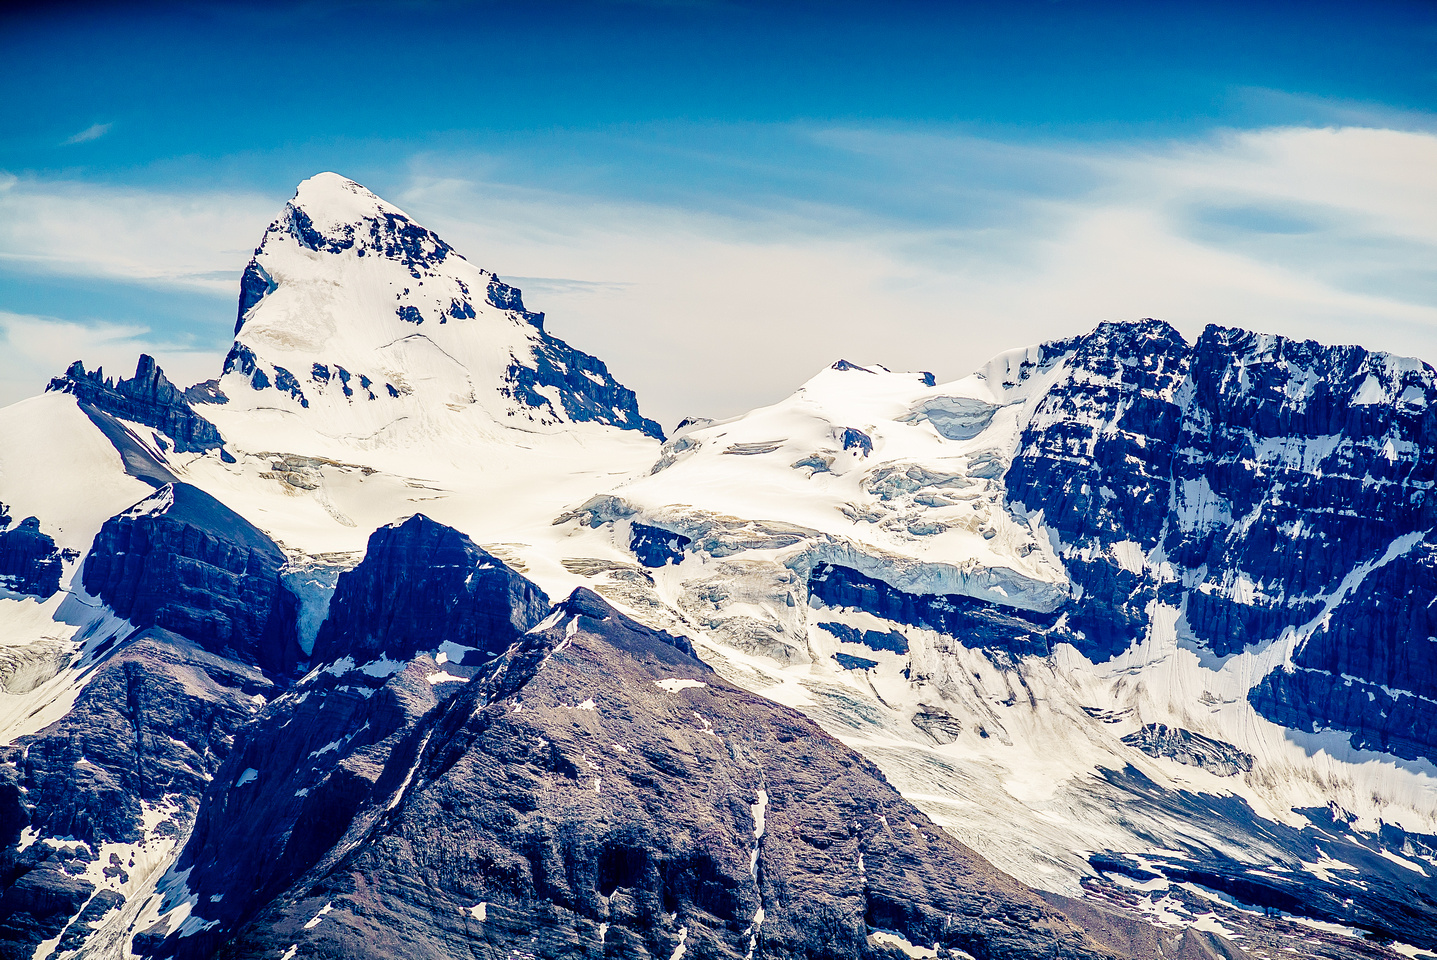 A gorgeous head-on view of the mighty 11,851 ft Mount Forbes - which I would climb in 2016, in perfect conditions.